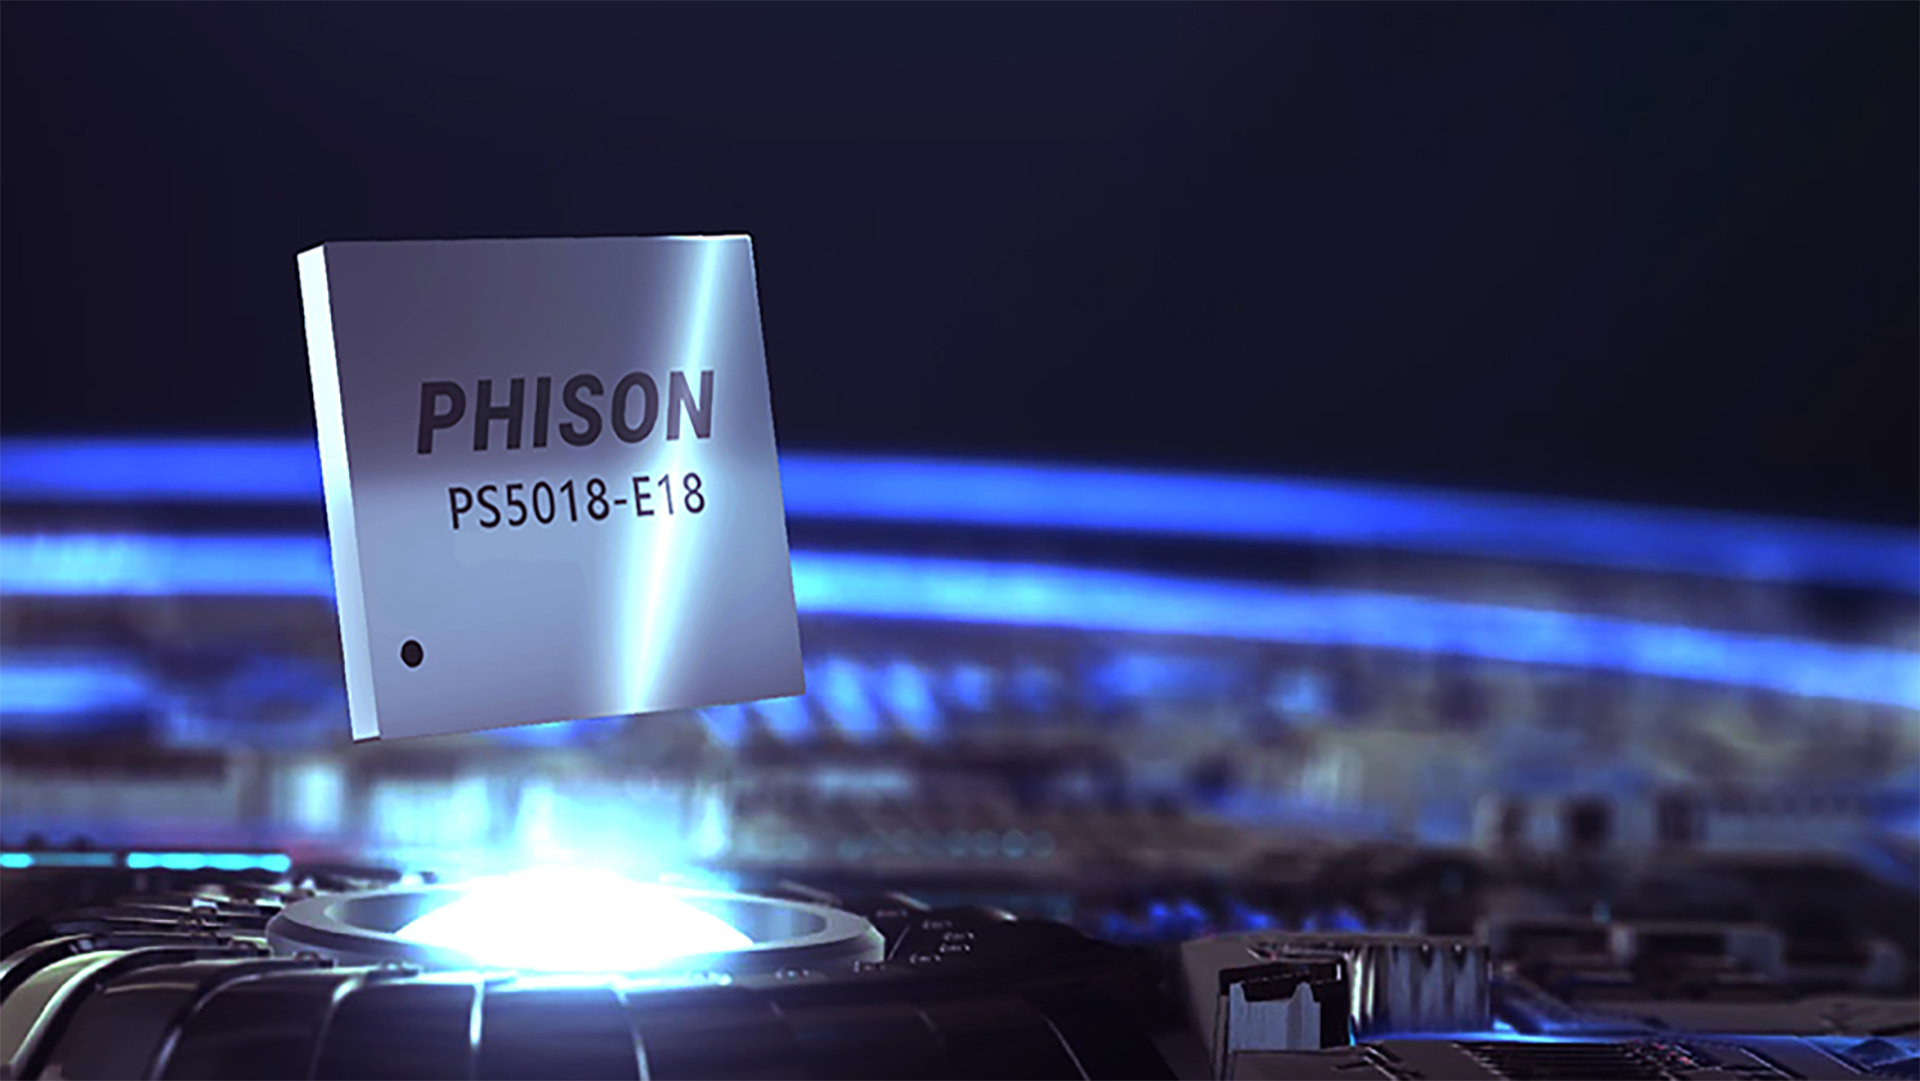 Phison's new SSD controller means we're already close to the limits of PCIe 4.0 speed